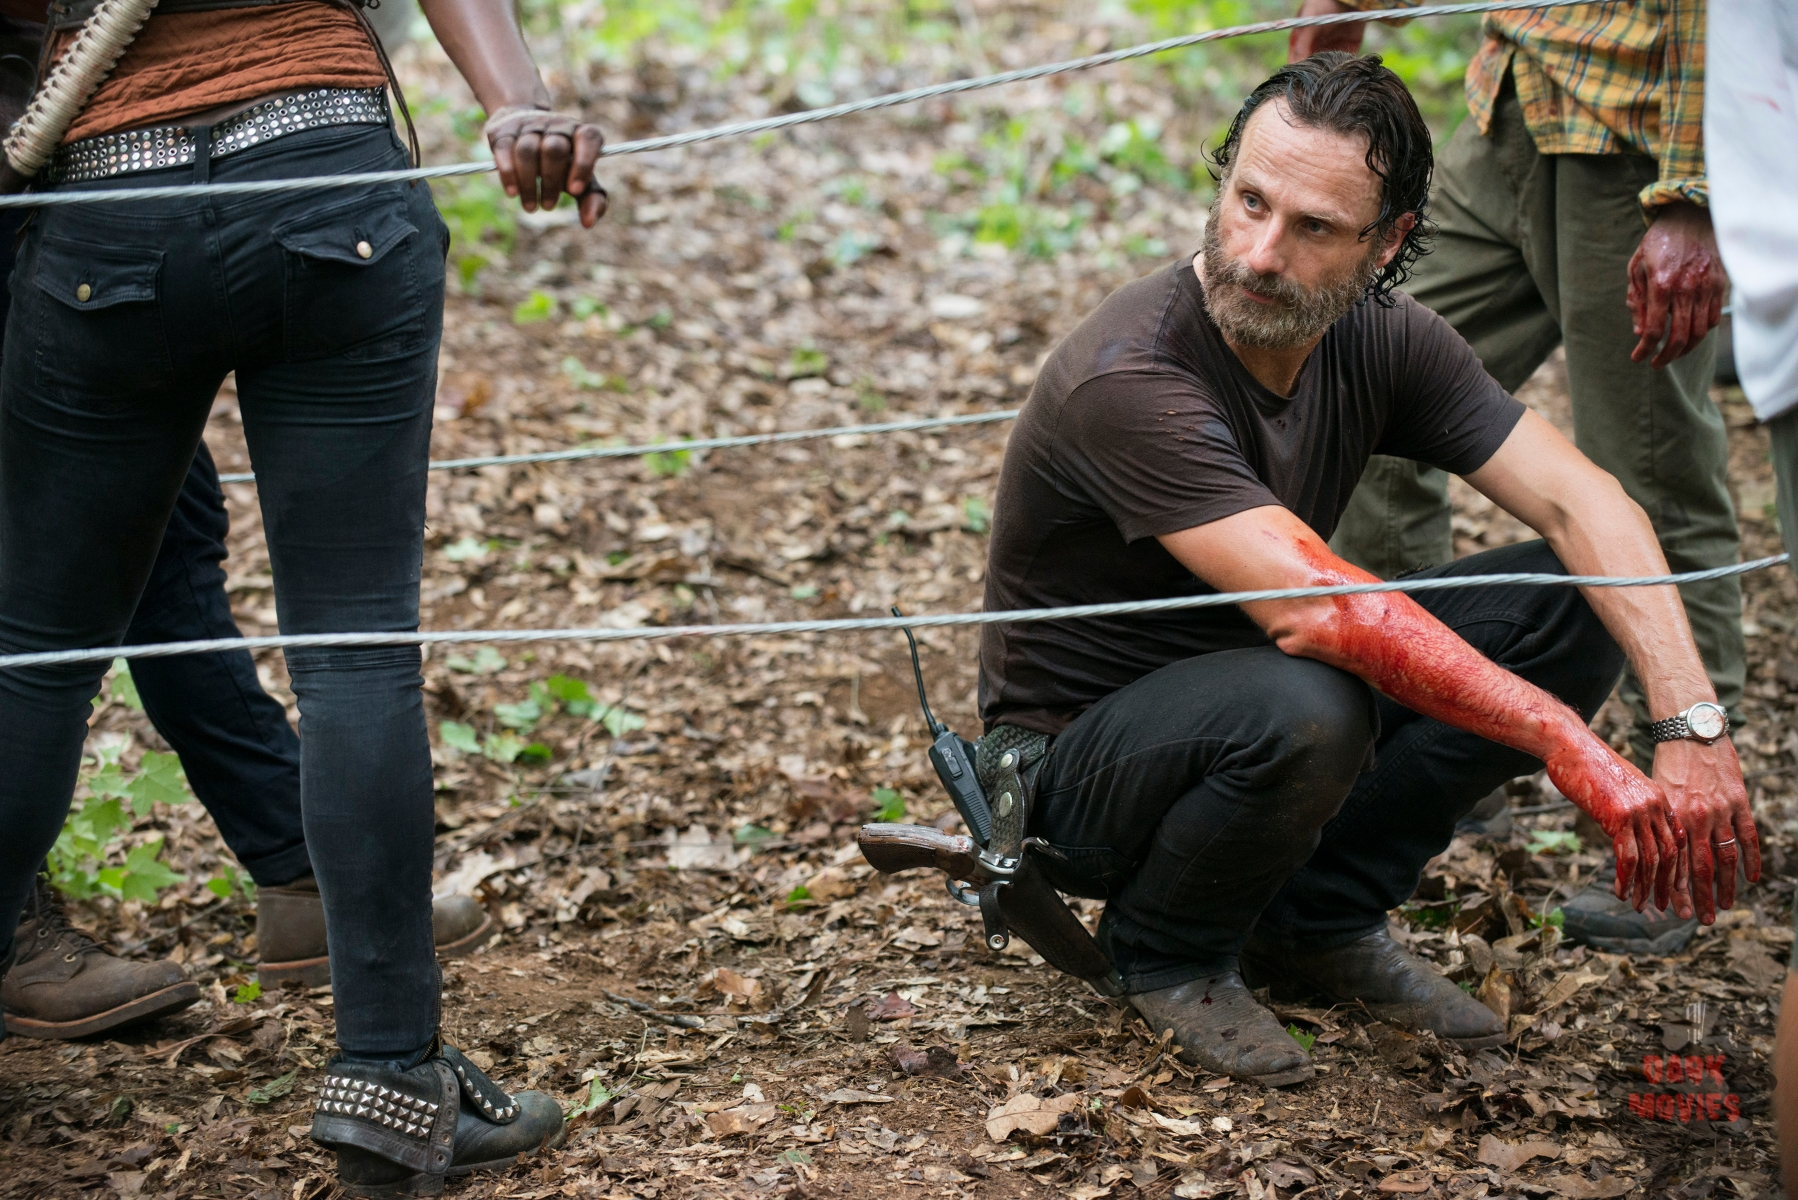 Andrew Lincoln - The Walking Dead _ Season 5, Episode 9 _ BTS - Photo Credit: Gene Page/AMC